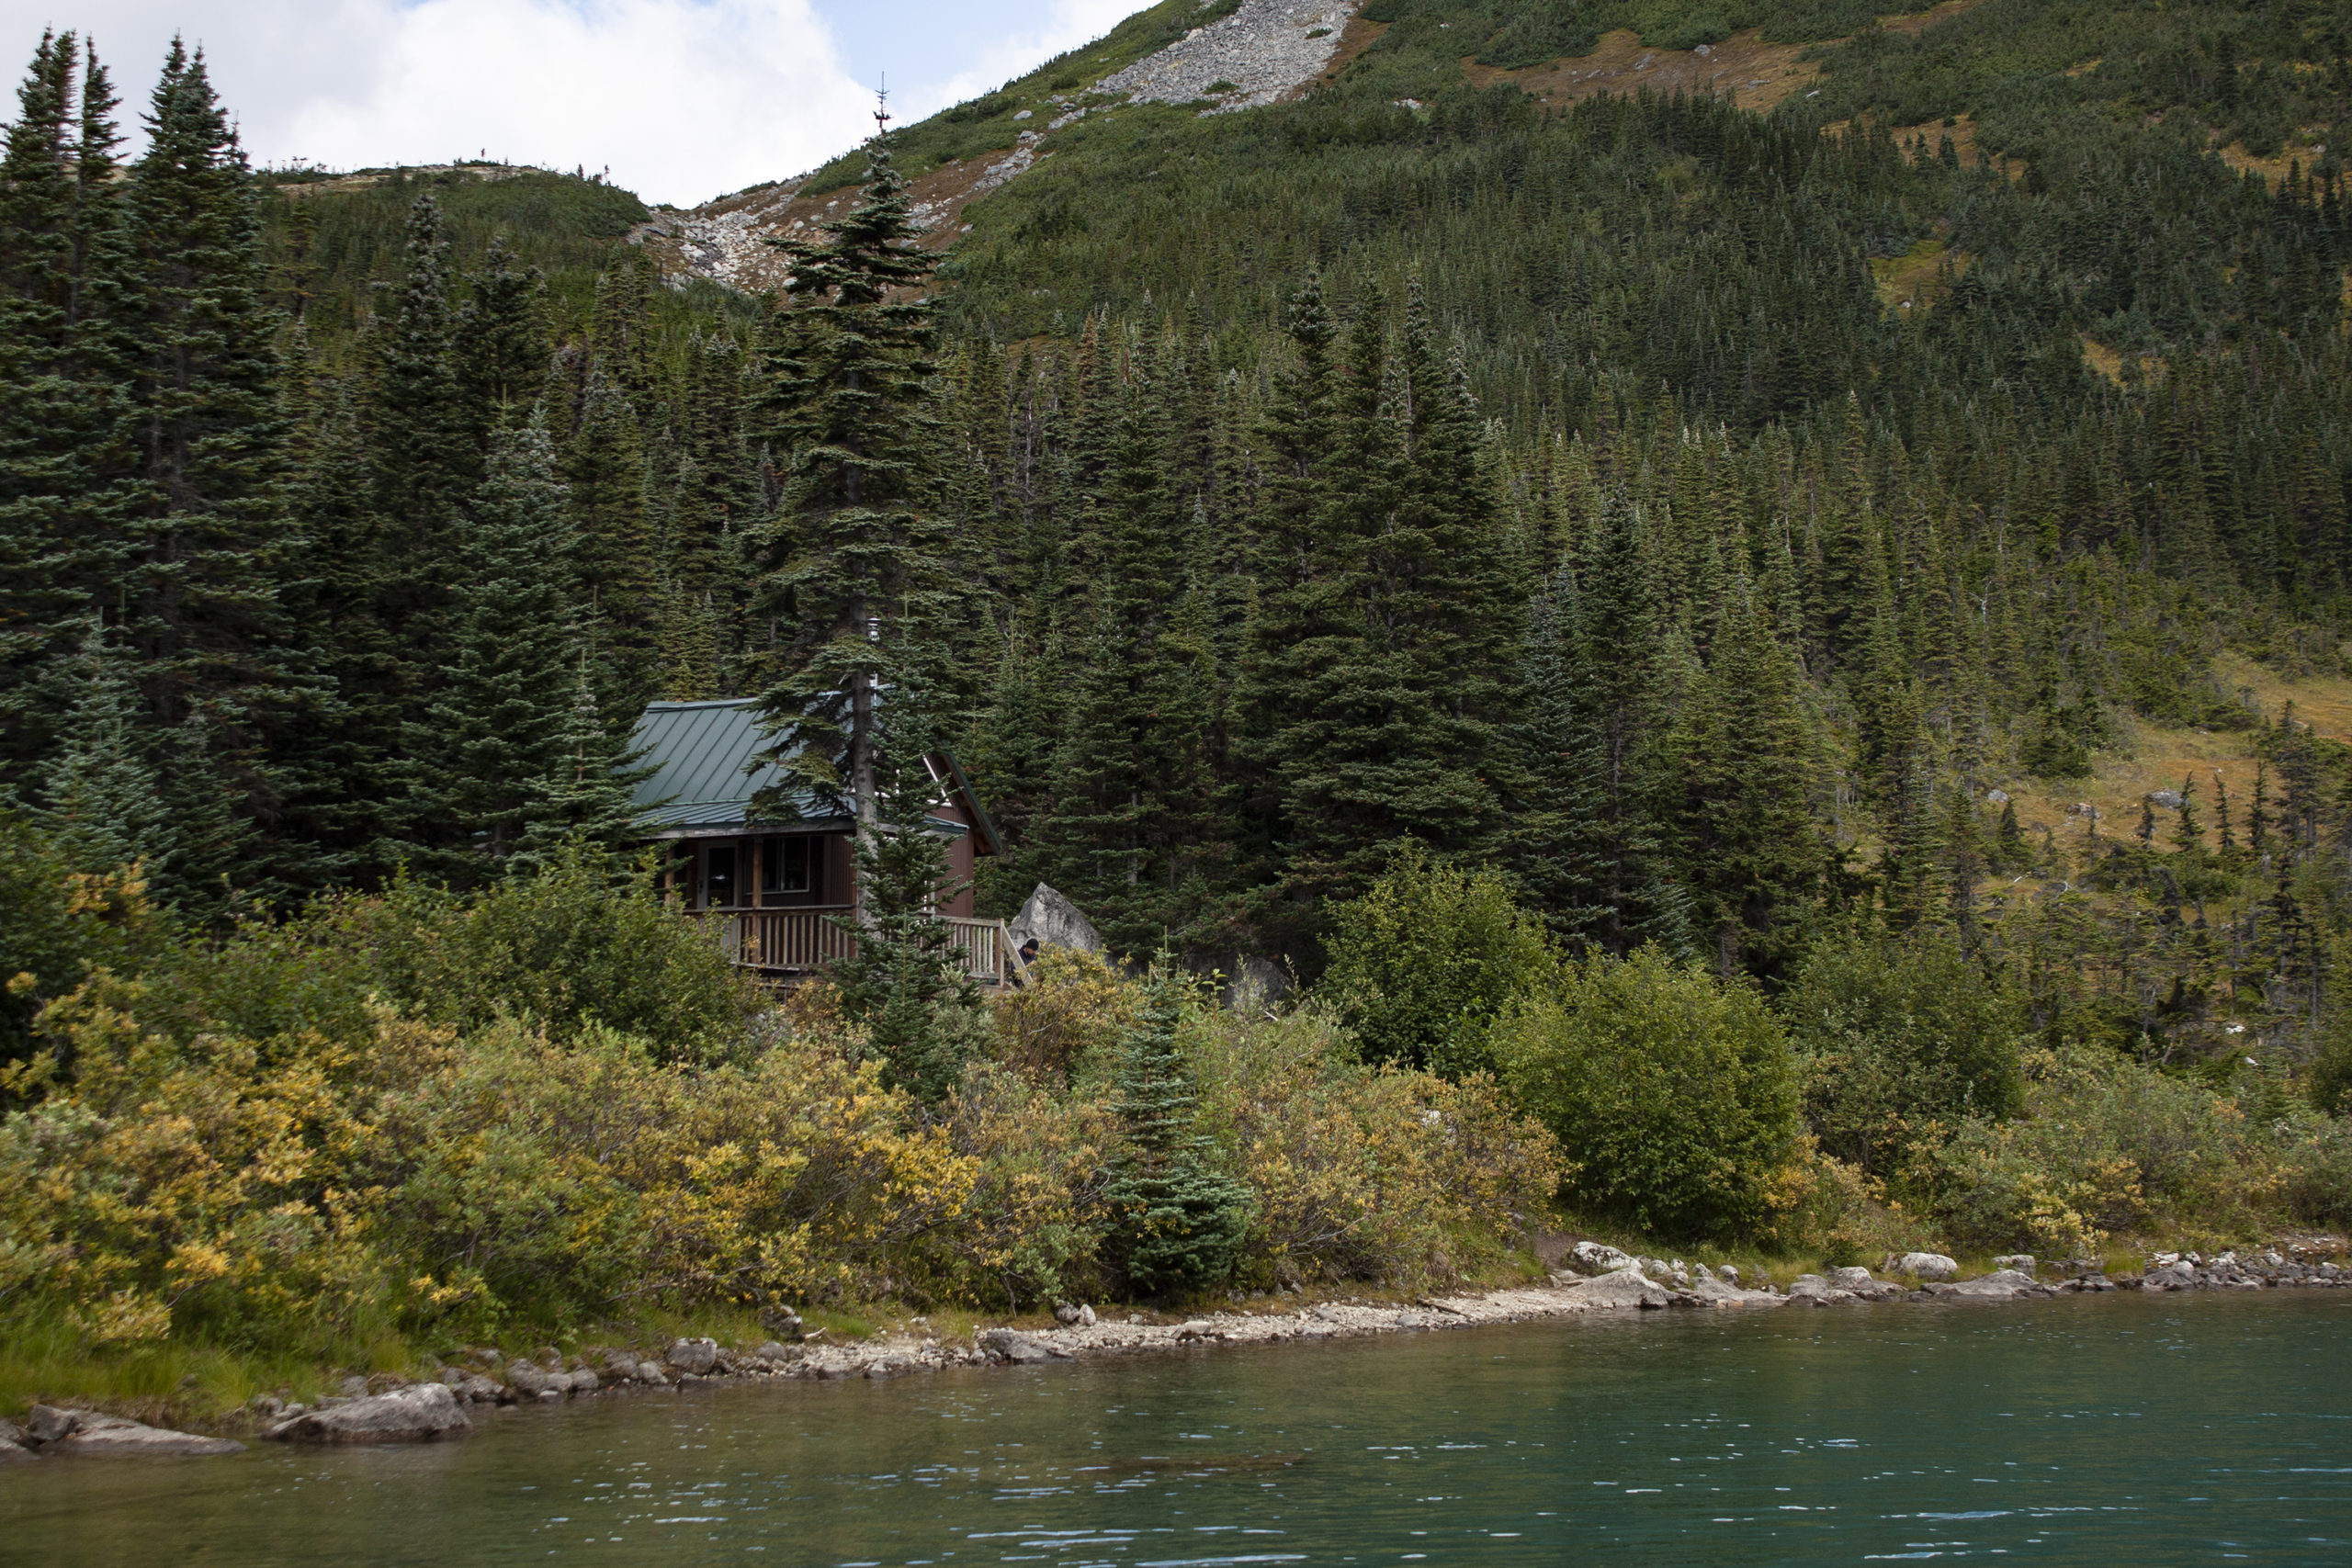 A cabin next to Upper Dewey Lake in Skagway, Alaska, pictured on Aug. 18, 2019. (Steve Silva)